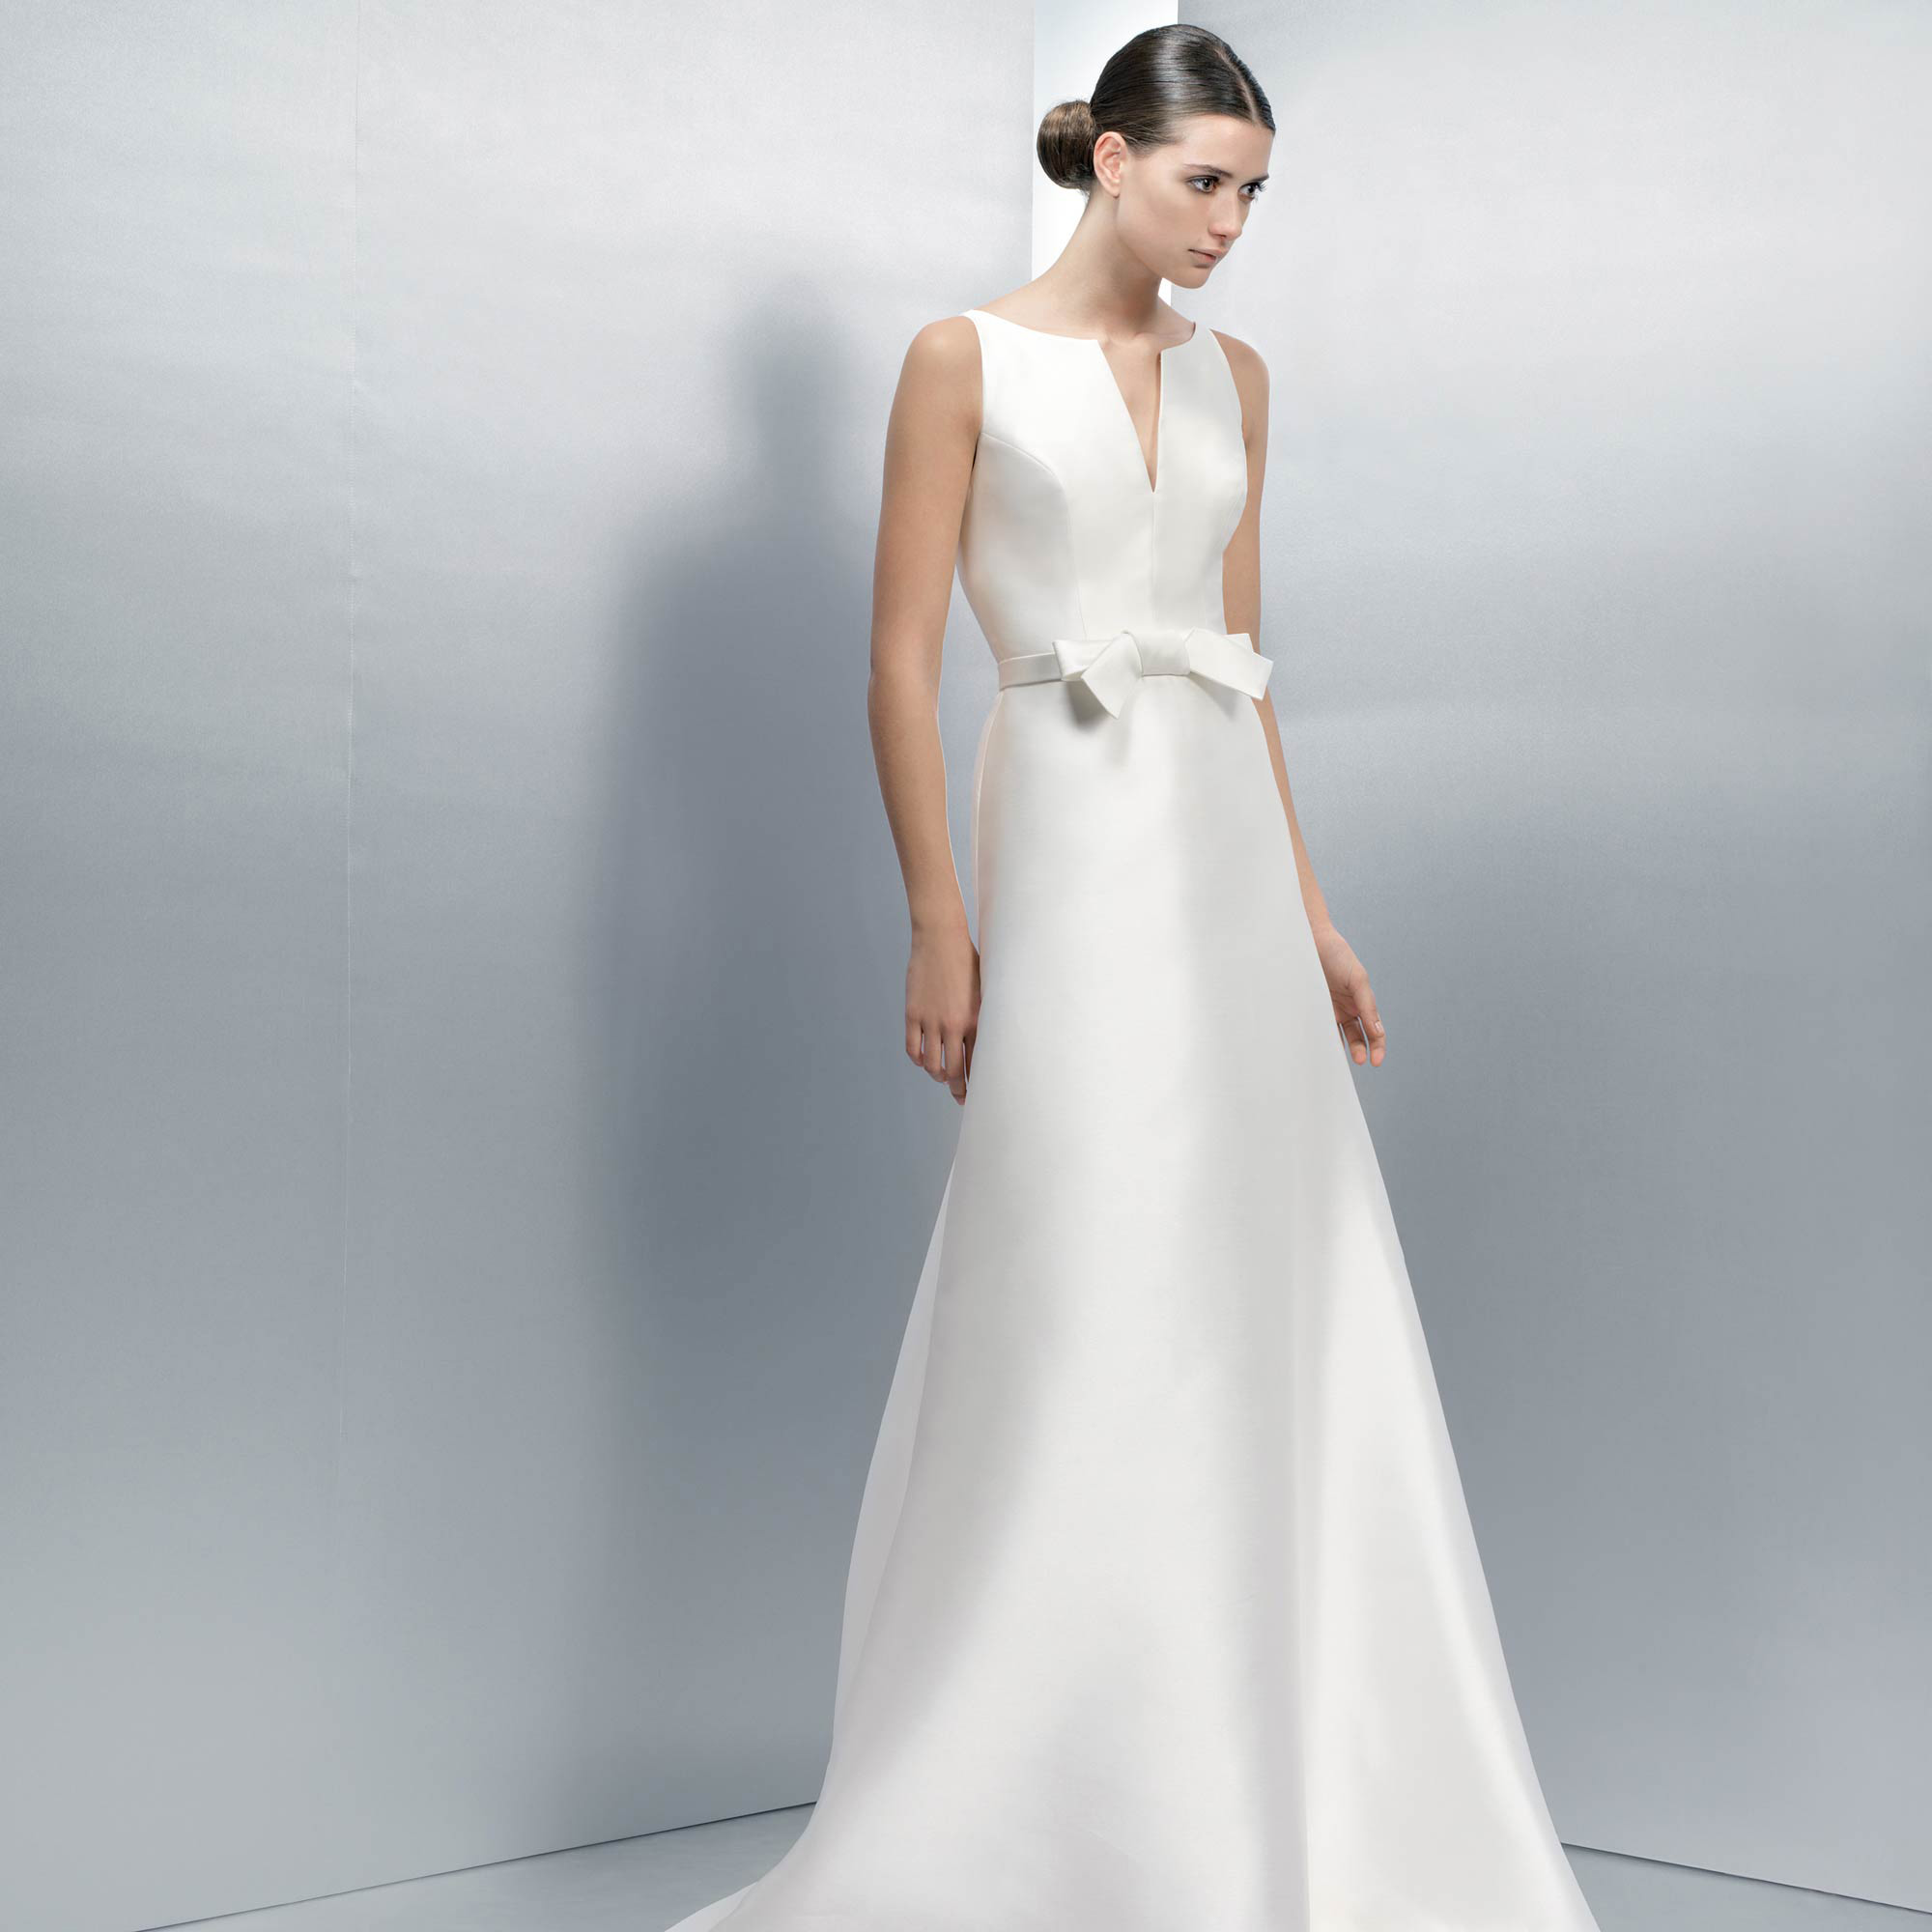 Jesus Peiro 2012 Spring Summer Bridal Collection The Fashionbrides